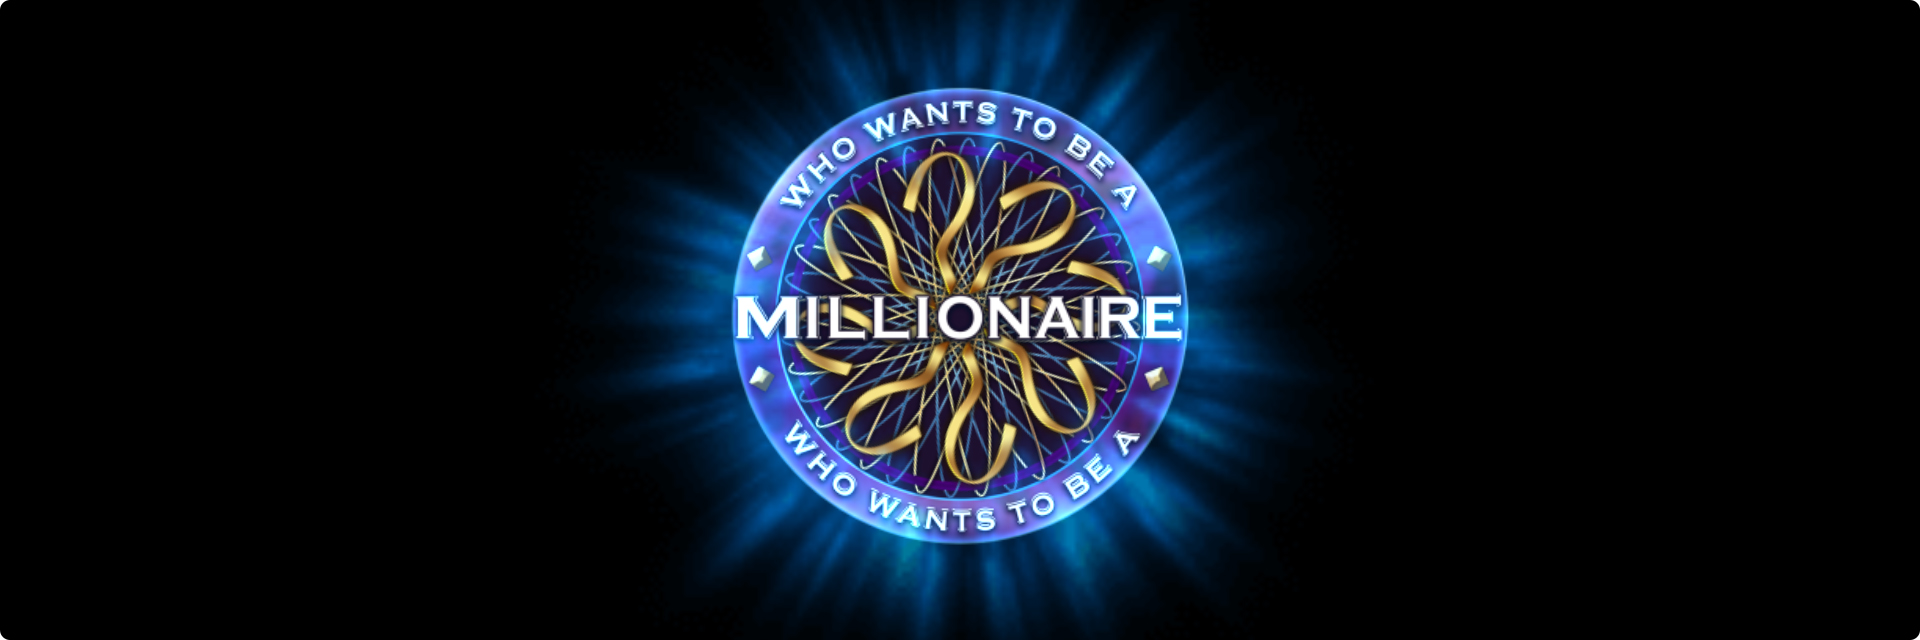 Who Wants to be a millionaire slot machine.